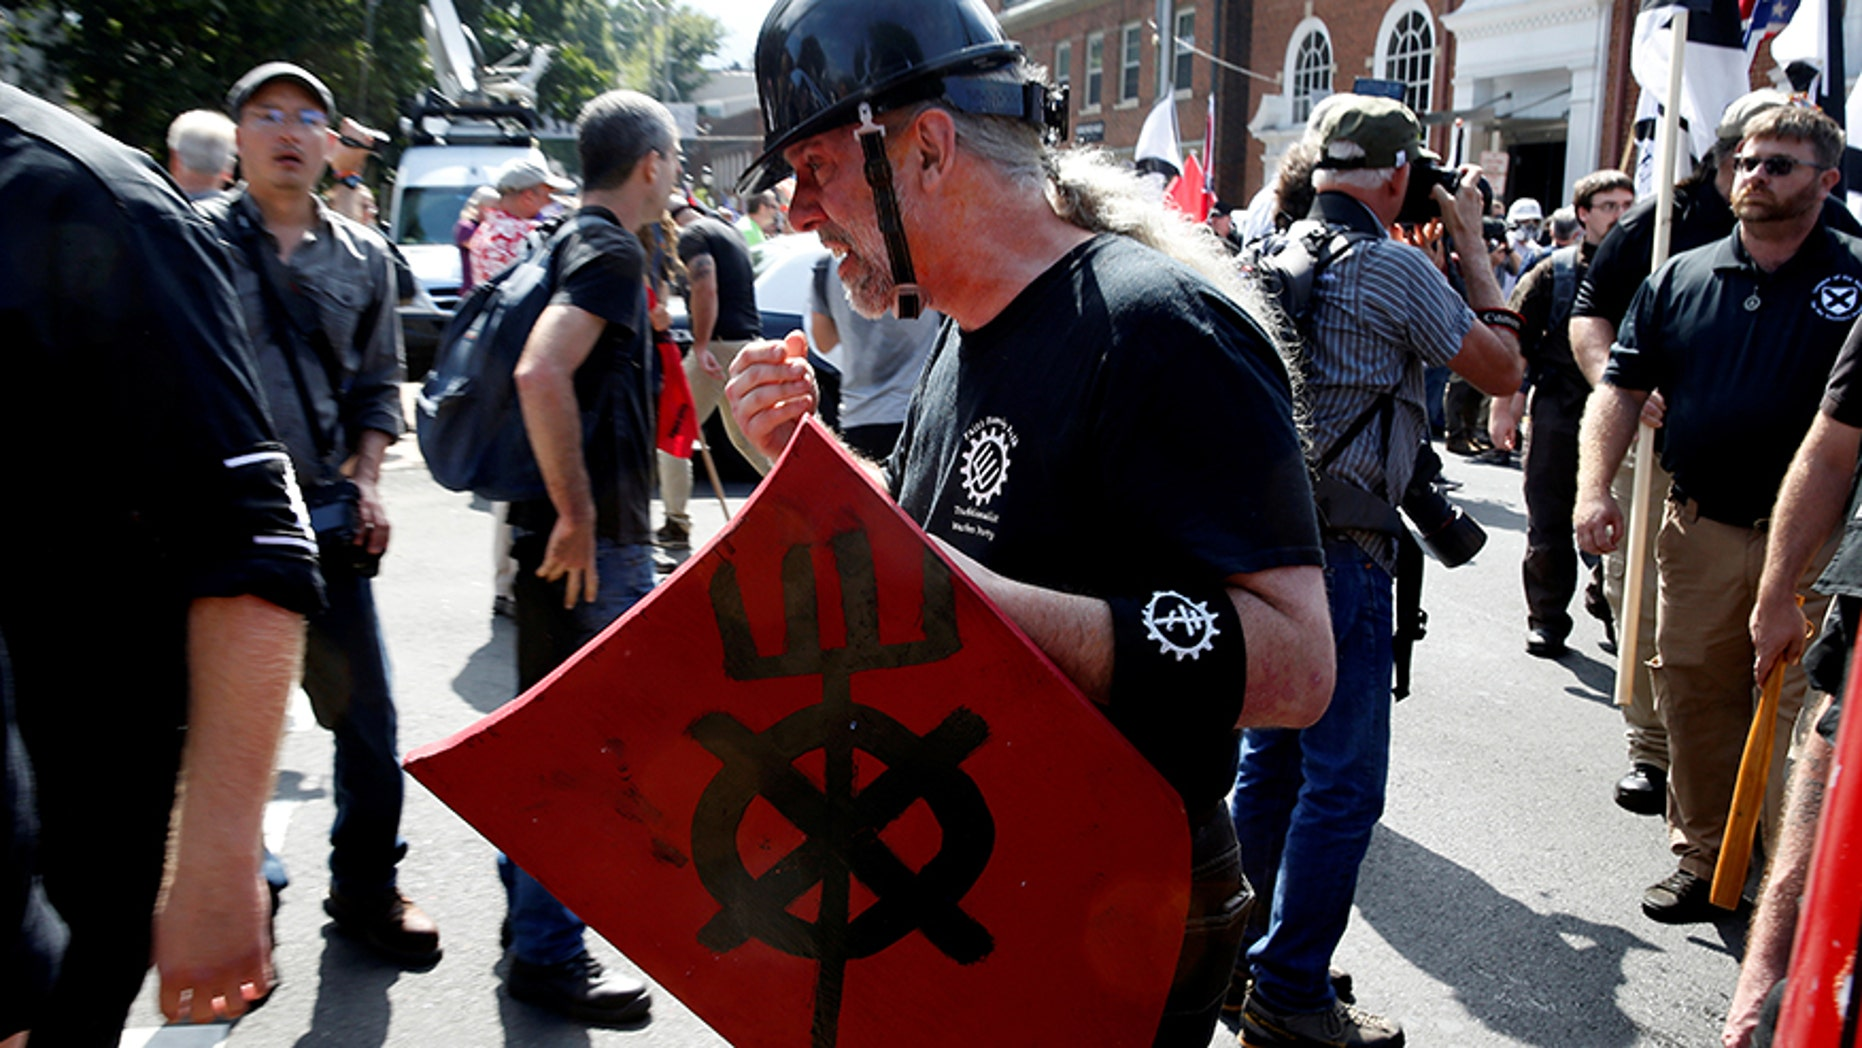 The use of homemade shields like this one could be banned from protests in Los Angeles.